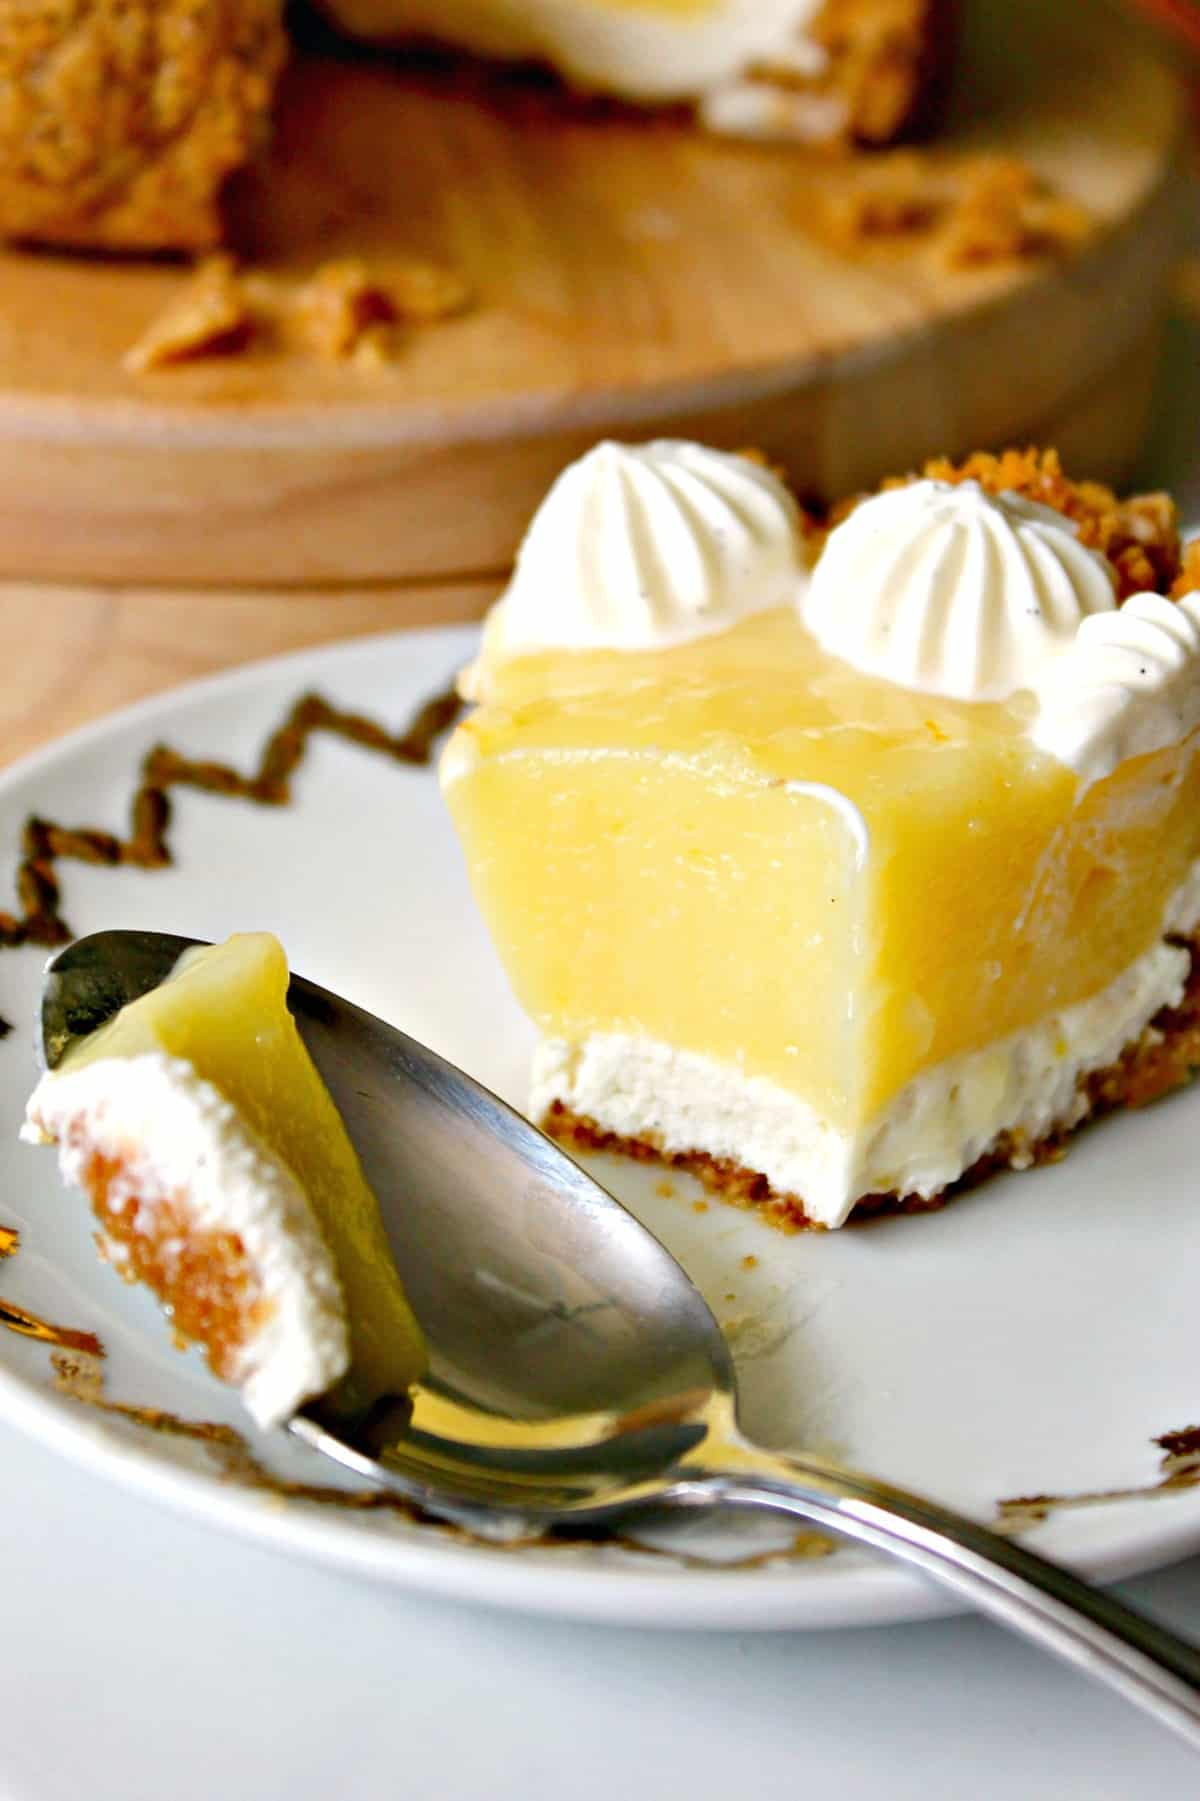 Meyer Lemon & Yogurt Cream Pie! If you're looking for Meyer Lemon recipes, look no further! This luscious pie is the perfect place to let those sweet-tart Meyer lemons shine. A smooth yogurt cream base and topping balances the flavors wonderfully.